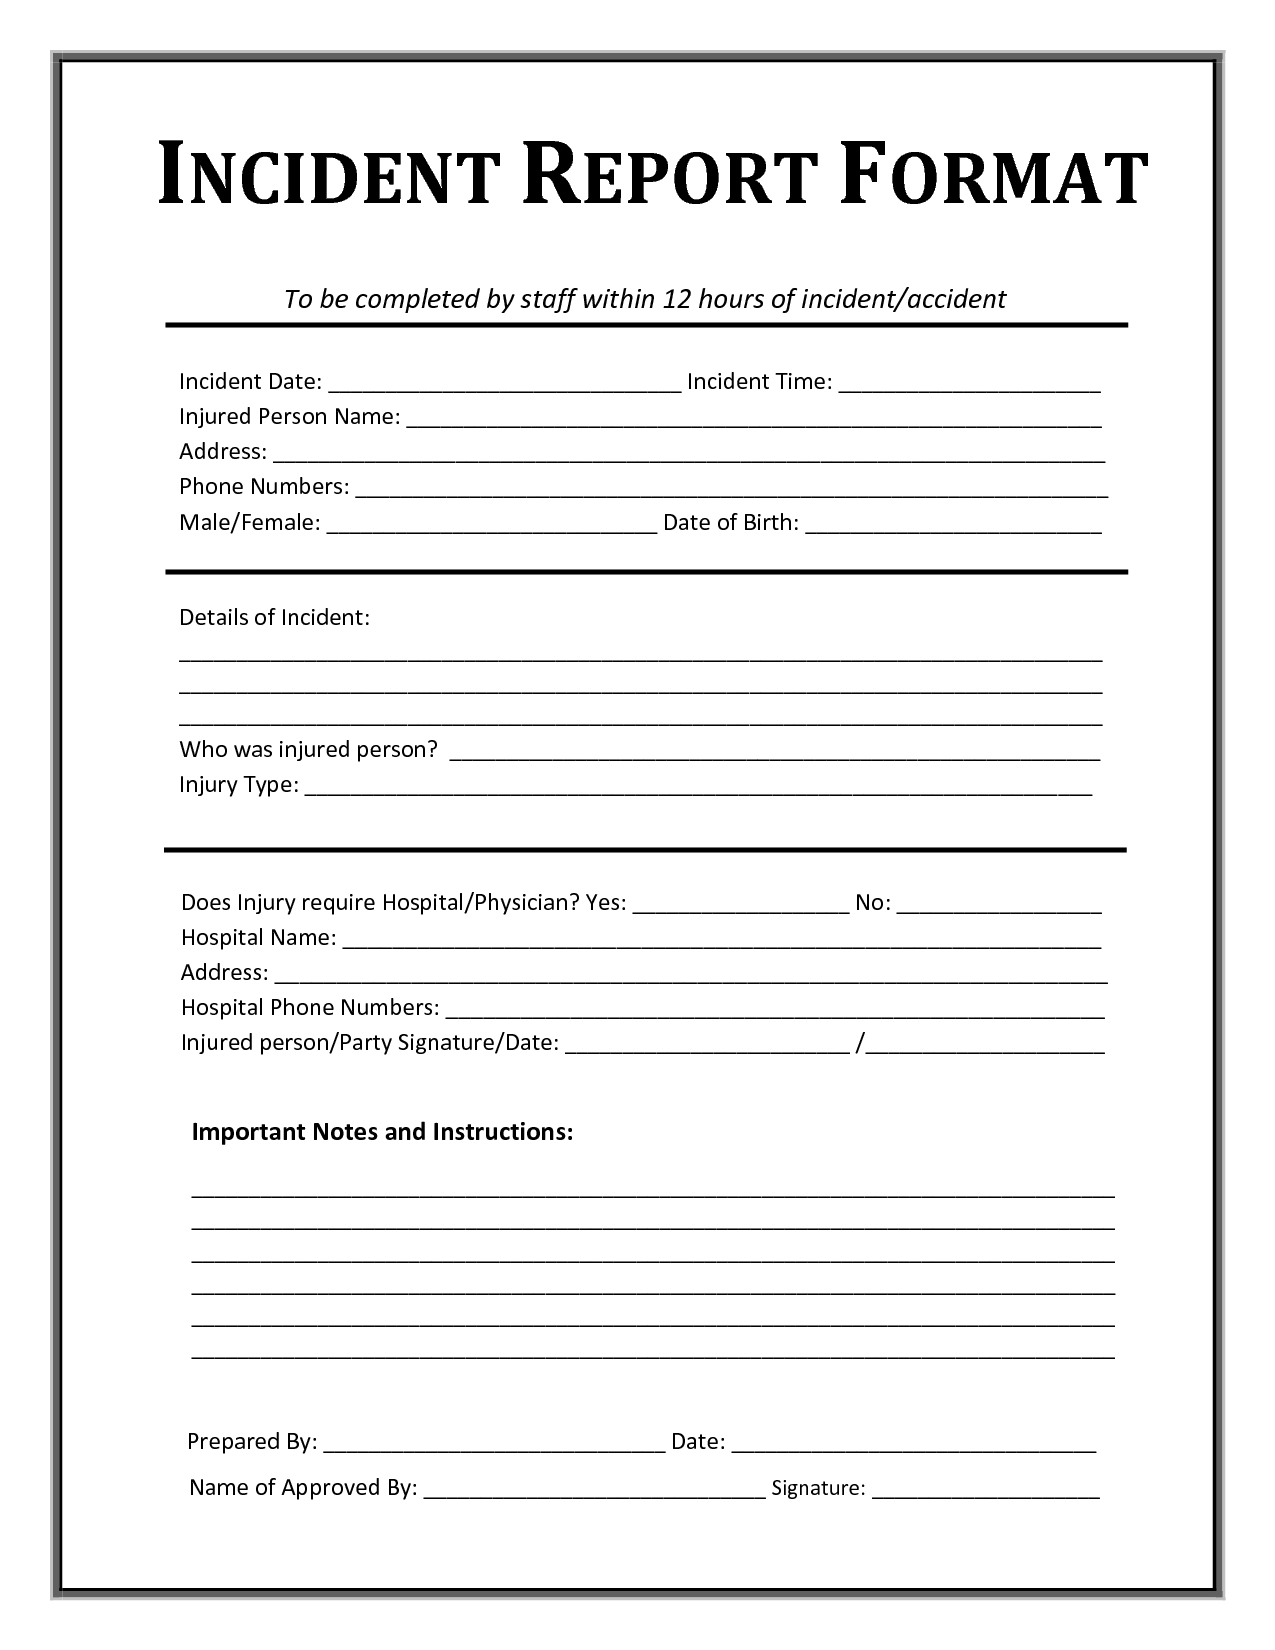 Incident report form template after school sign in for Serious incident report template